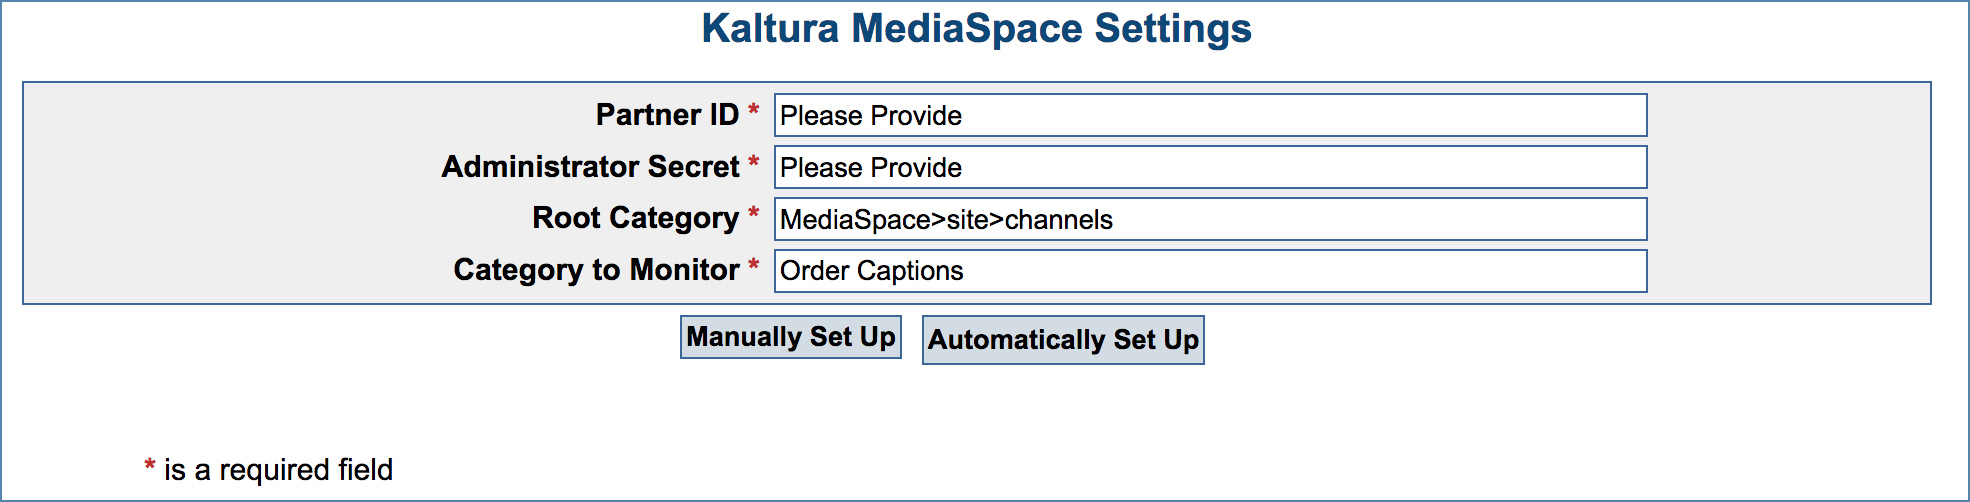 Image of the Kaltura MediaSpace Settings page